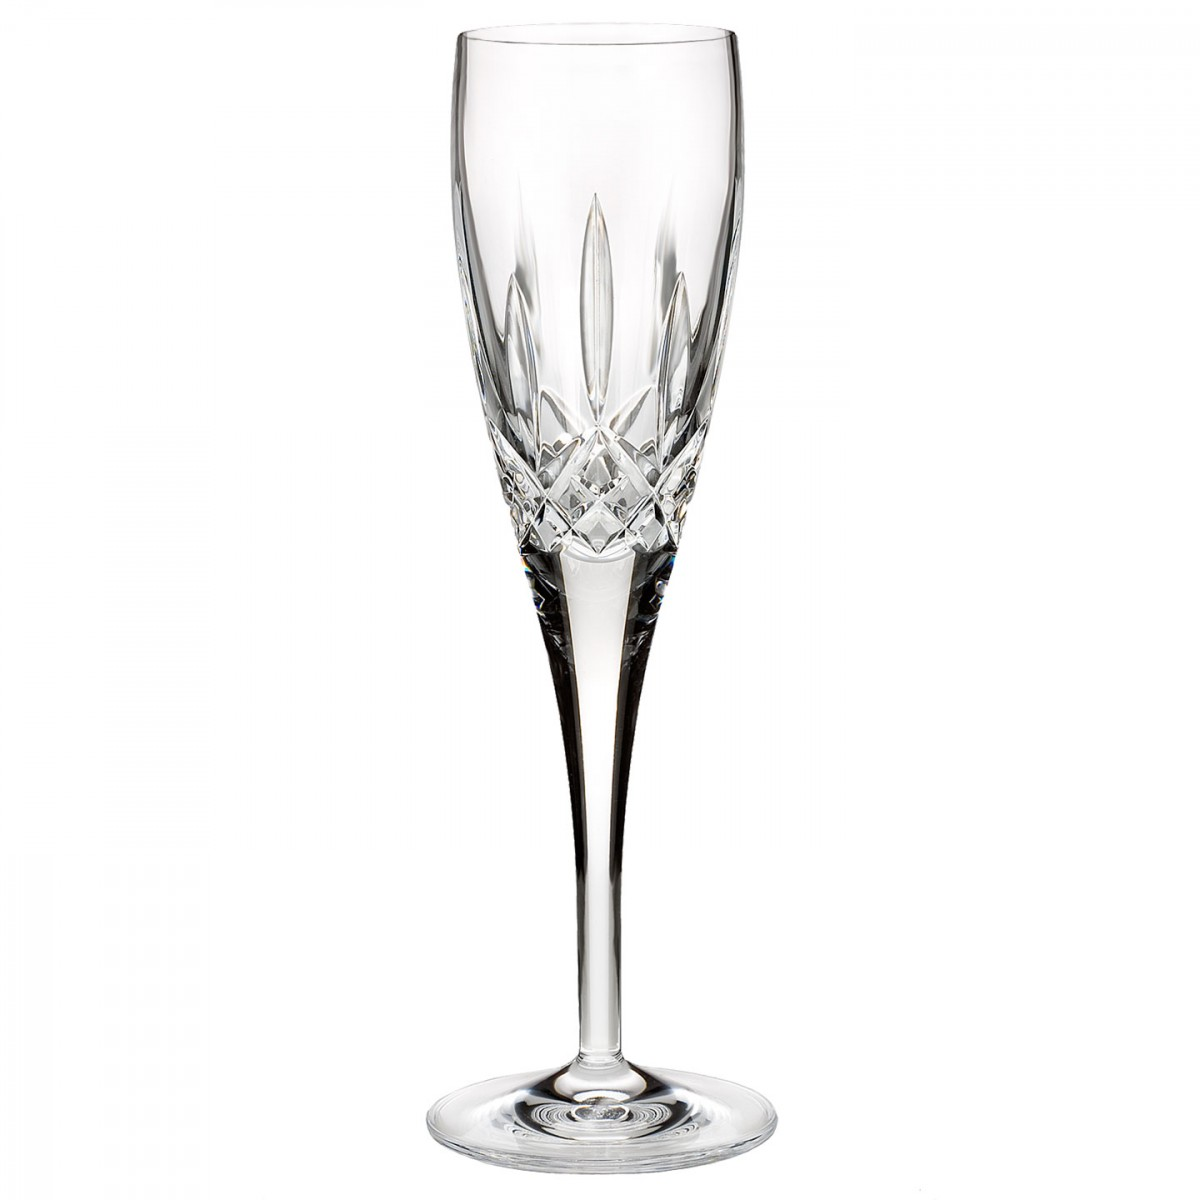 Waterford Lismore Nouveau Crystal Flute, Single